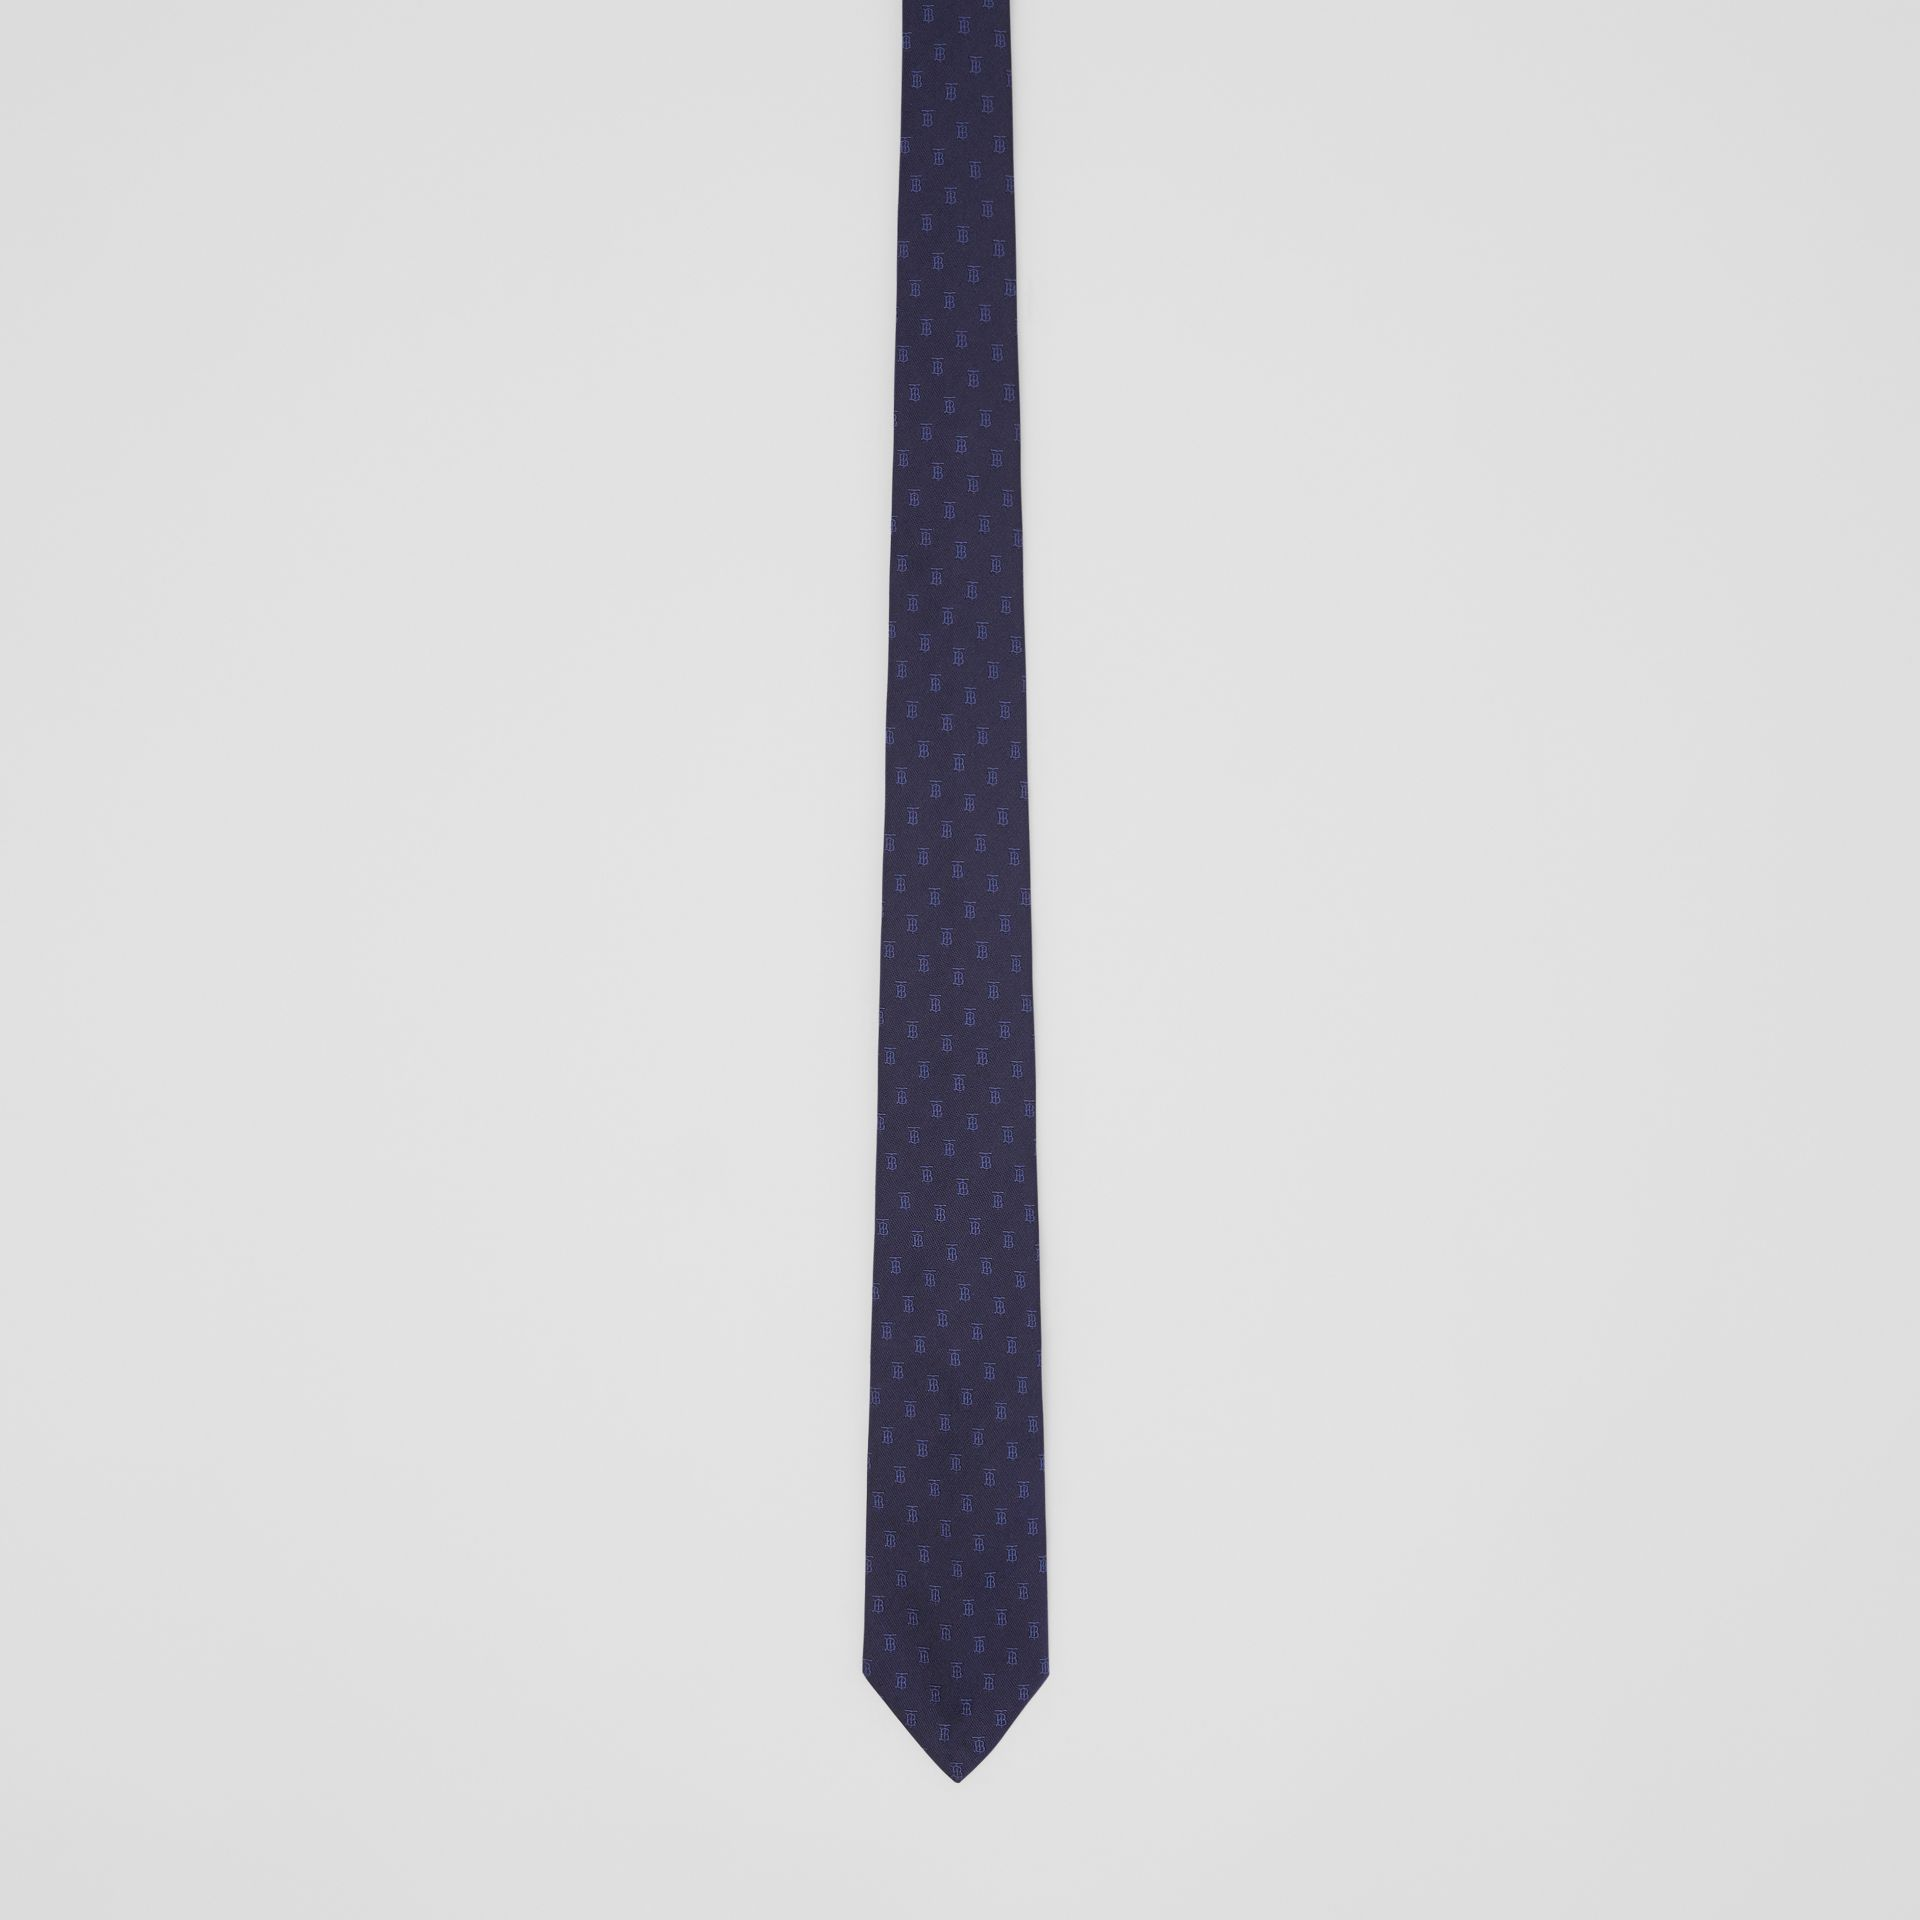 Classic Cut Monogram Motif Silk Jacquard Tie in Navy - Men | Burberry United Kingdom - gallery image 3